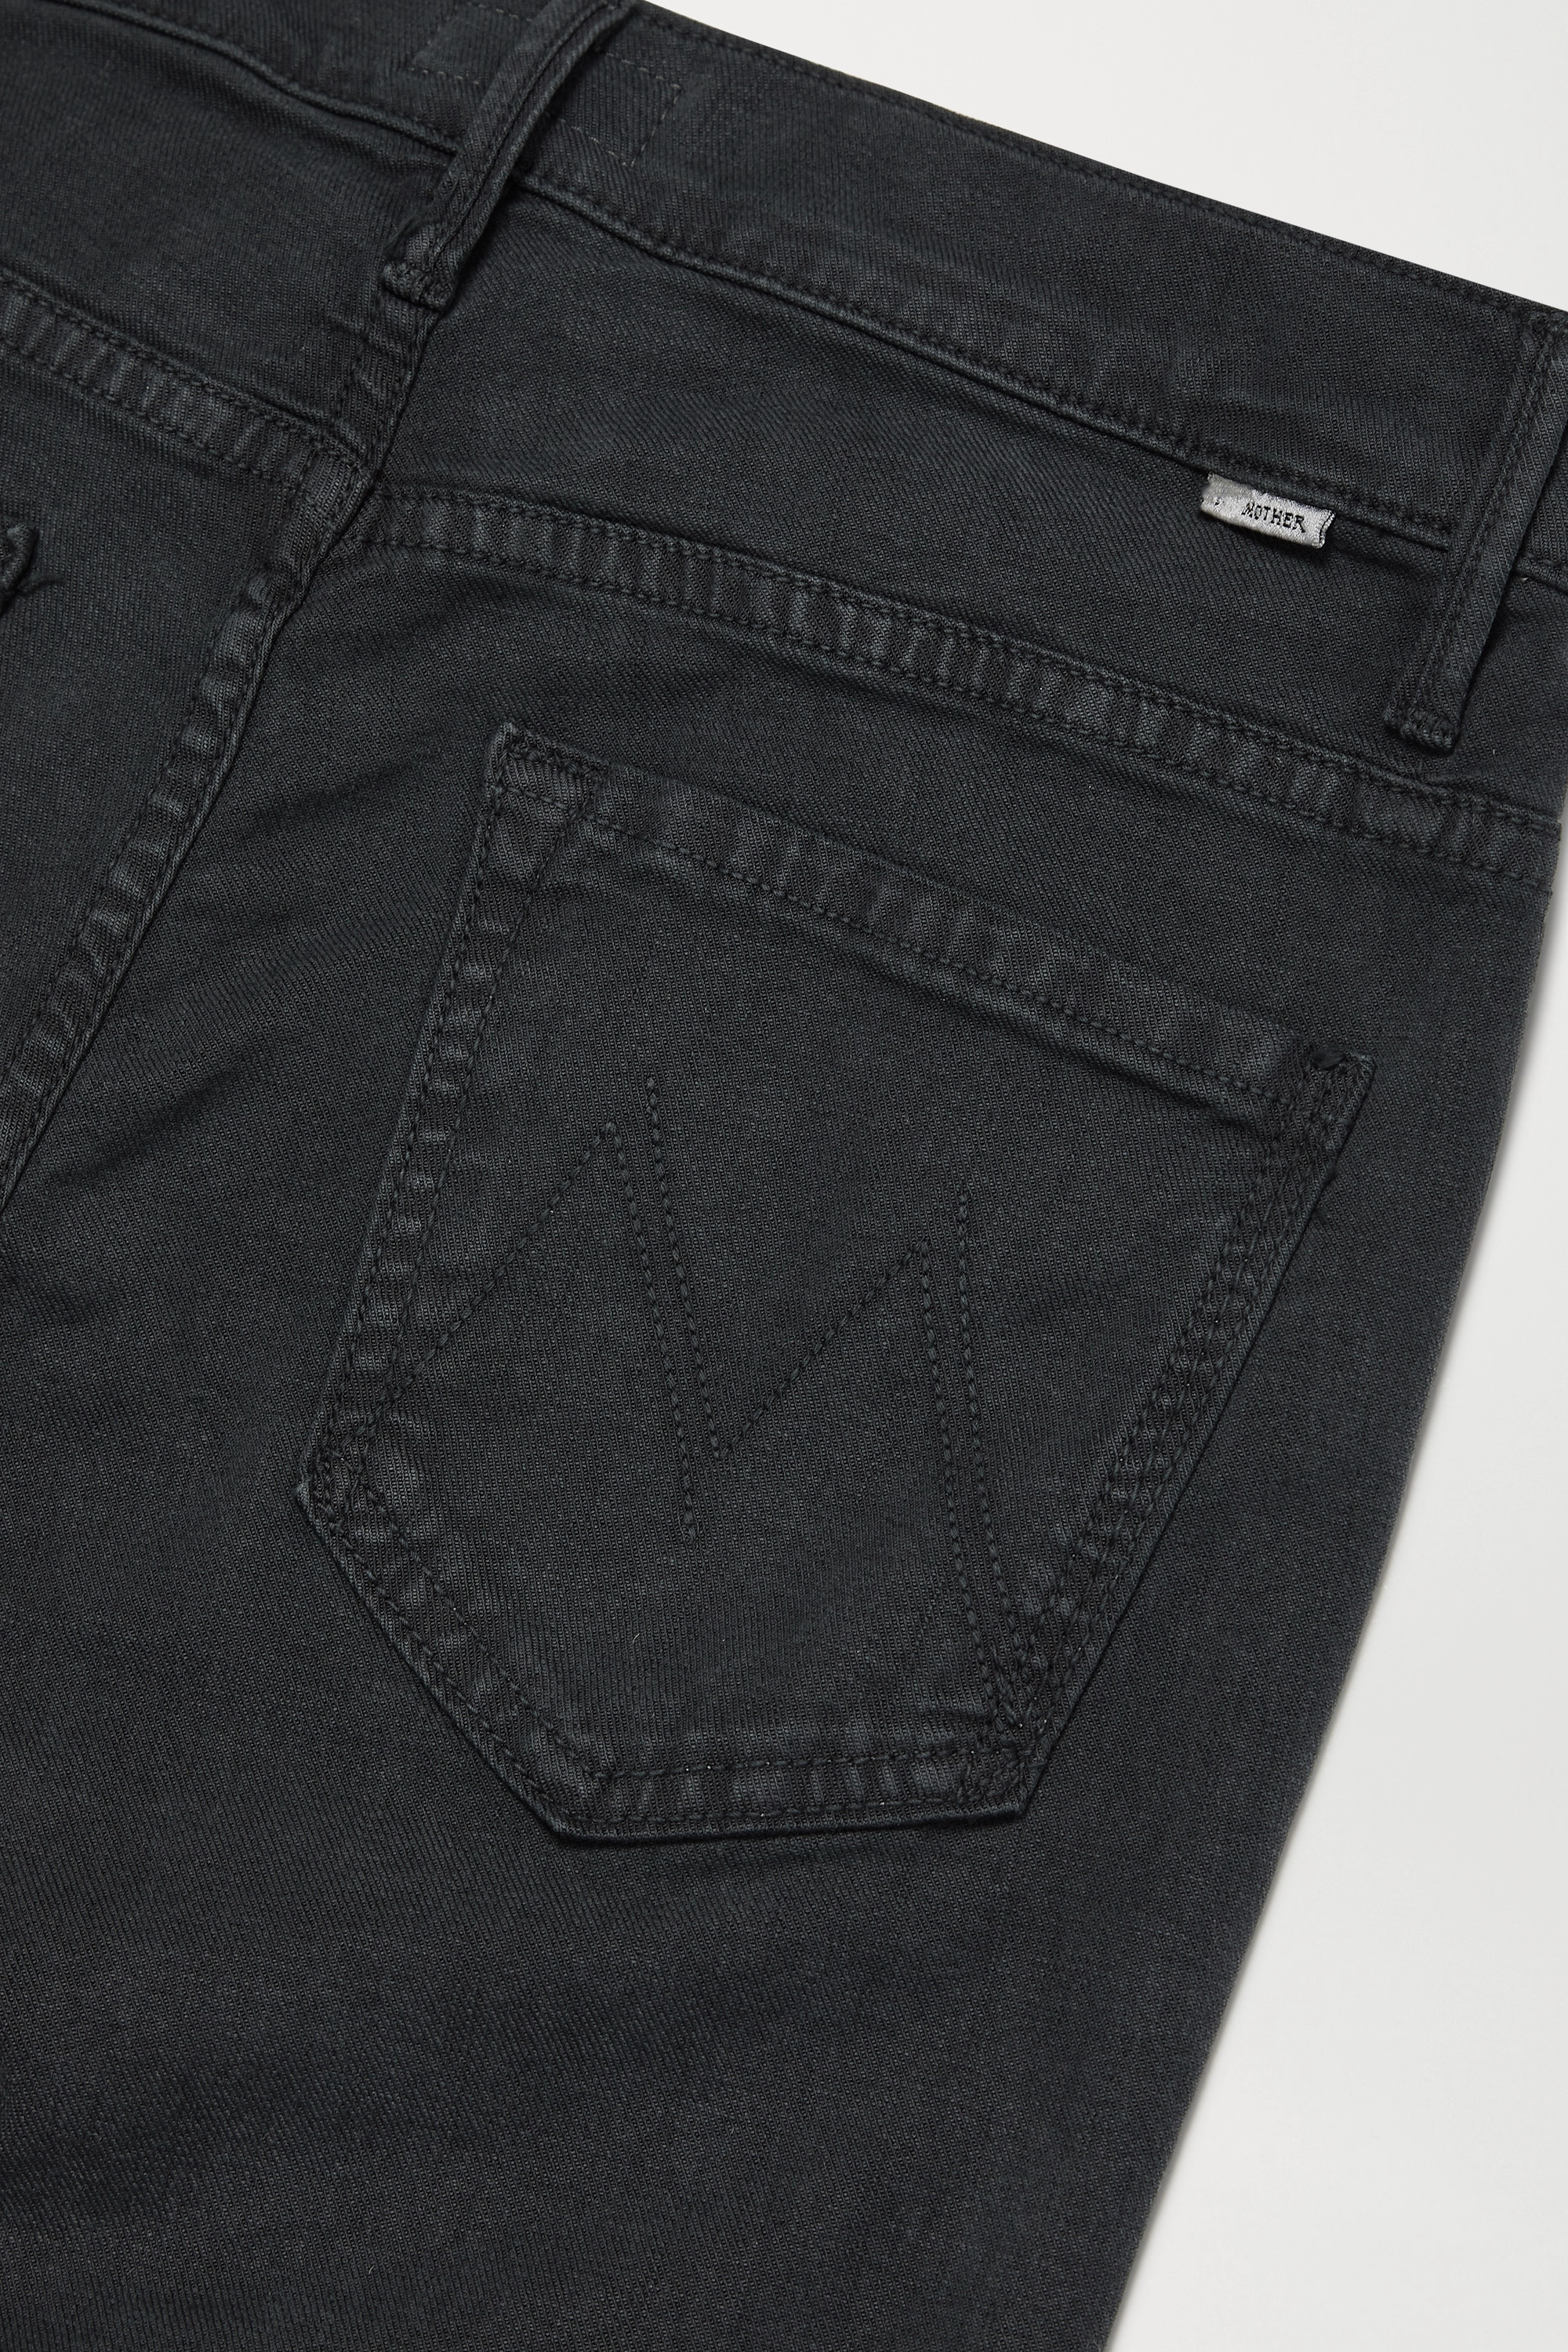 MOTHER The Insider Crop frayed high-rise flared jeans